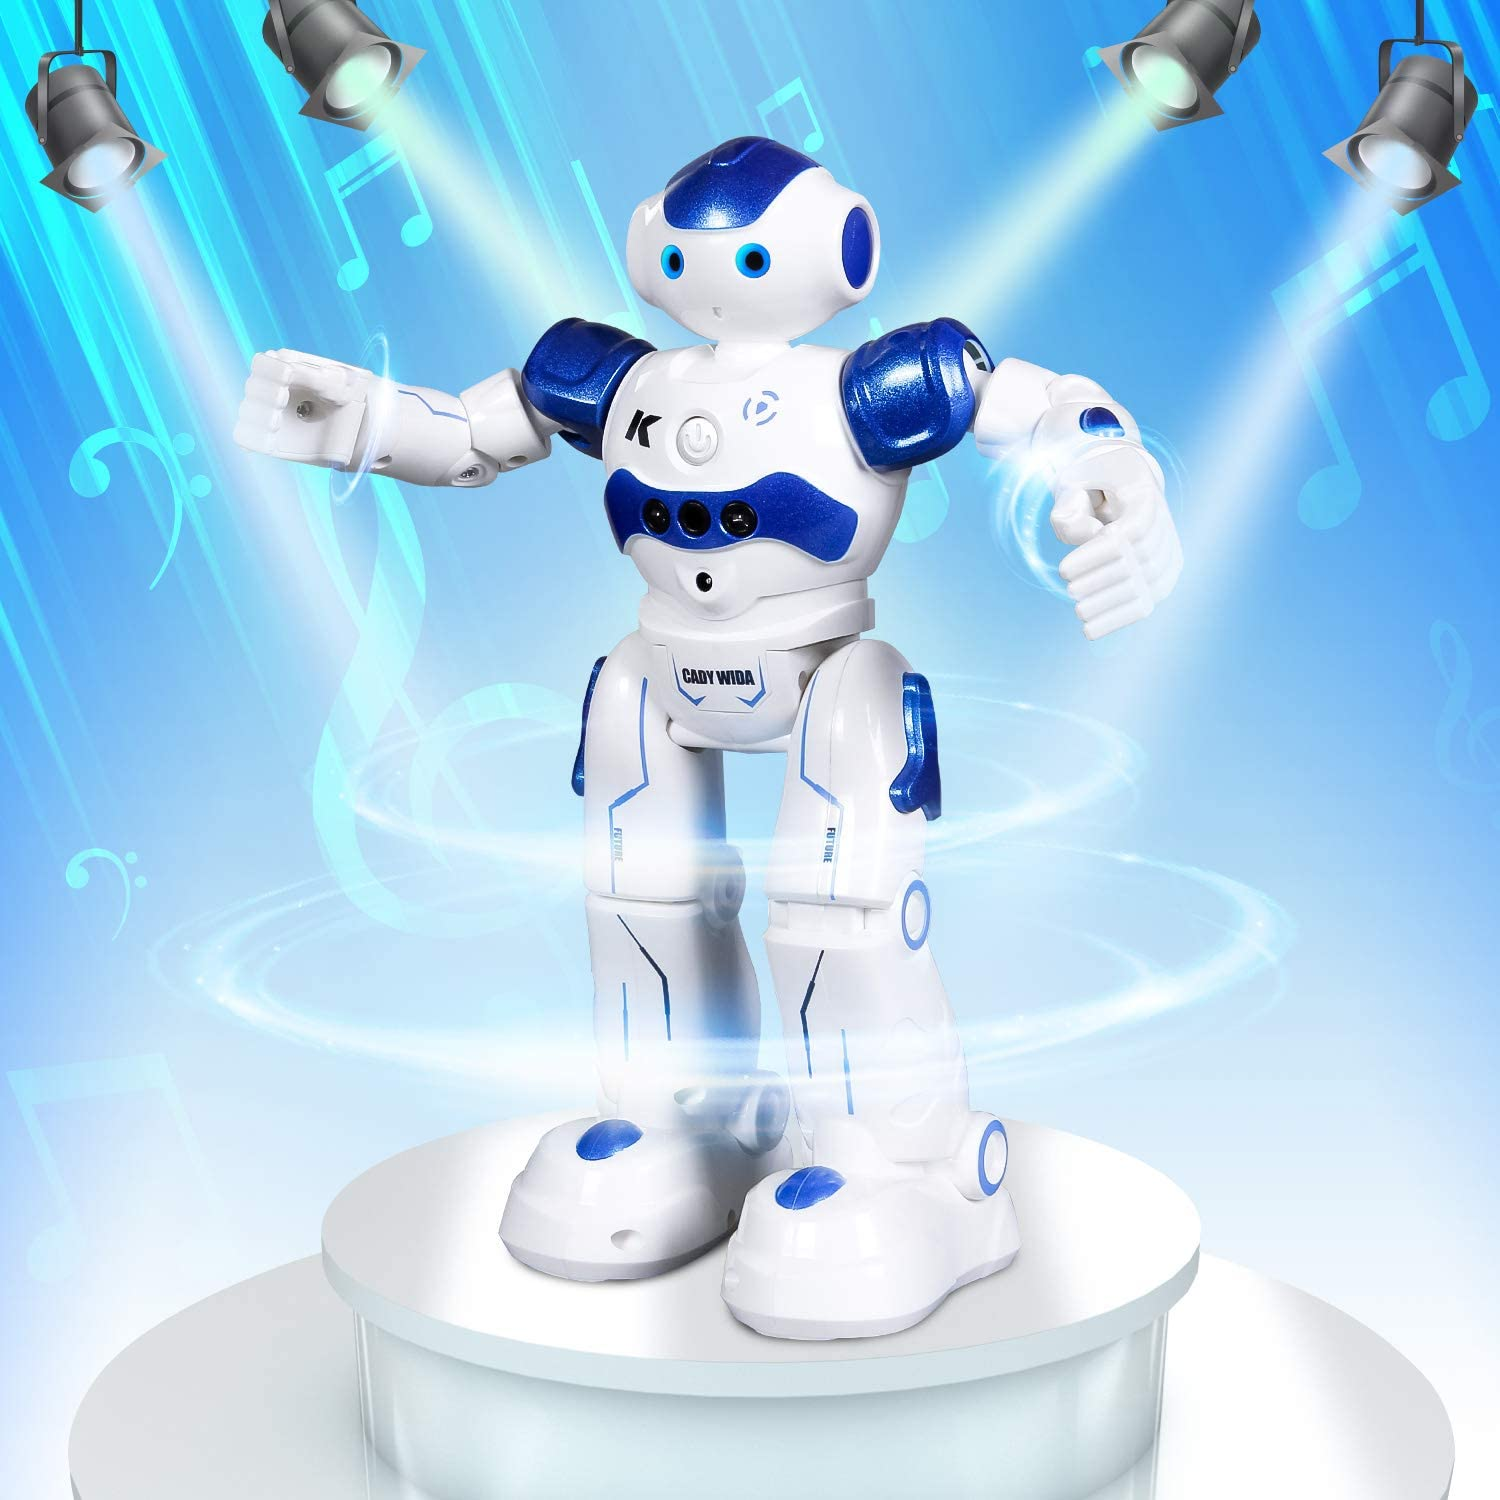 Robot Toy, Programmable Intelligent Walk Sing Dance Robot for Kids